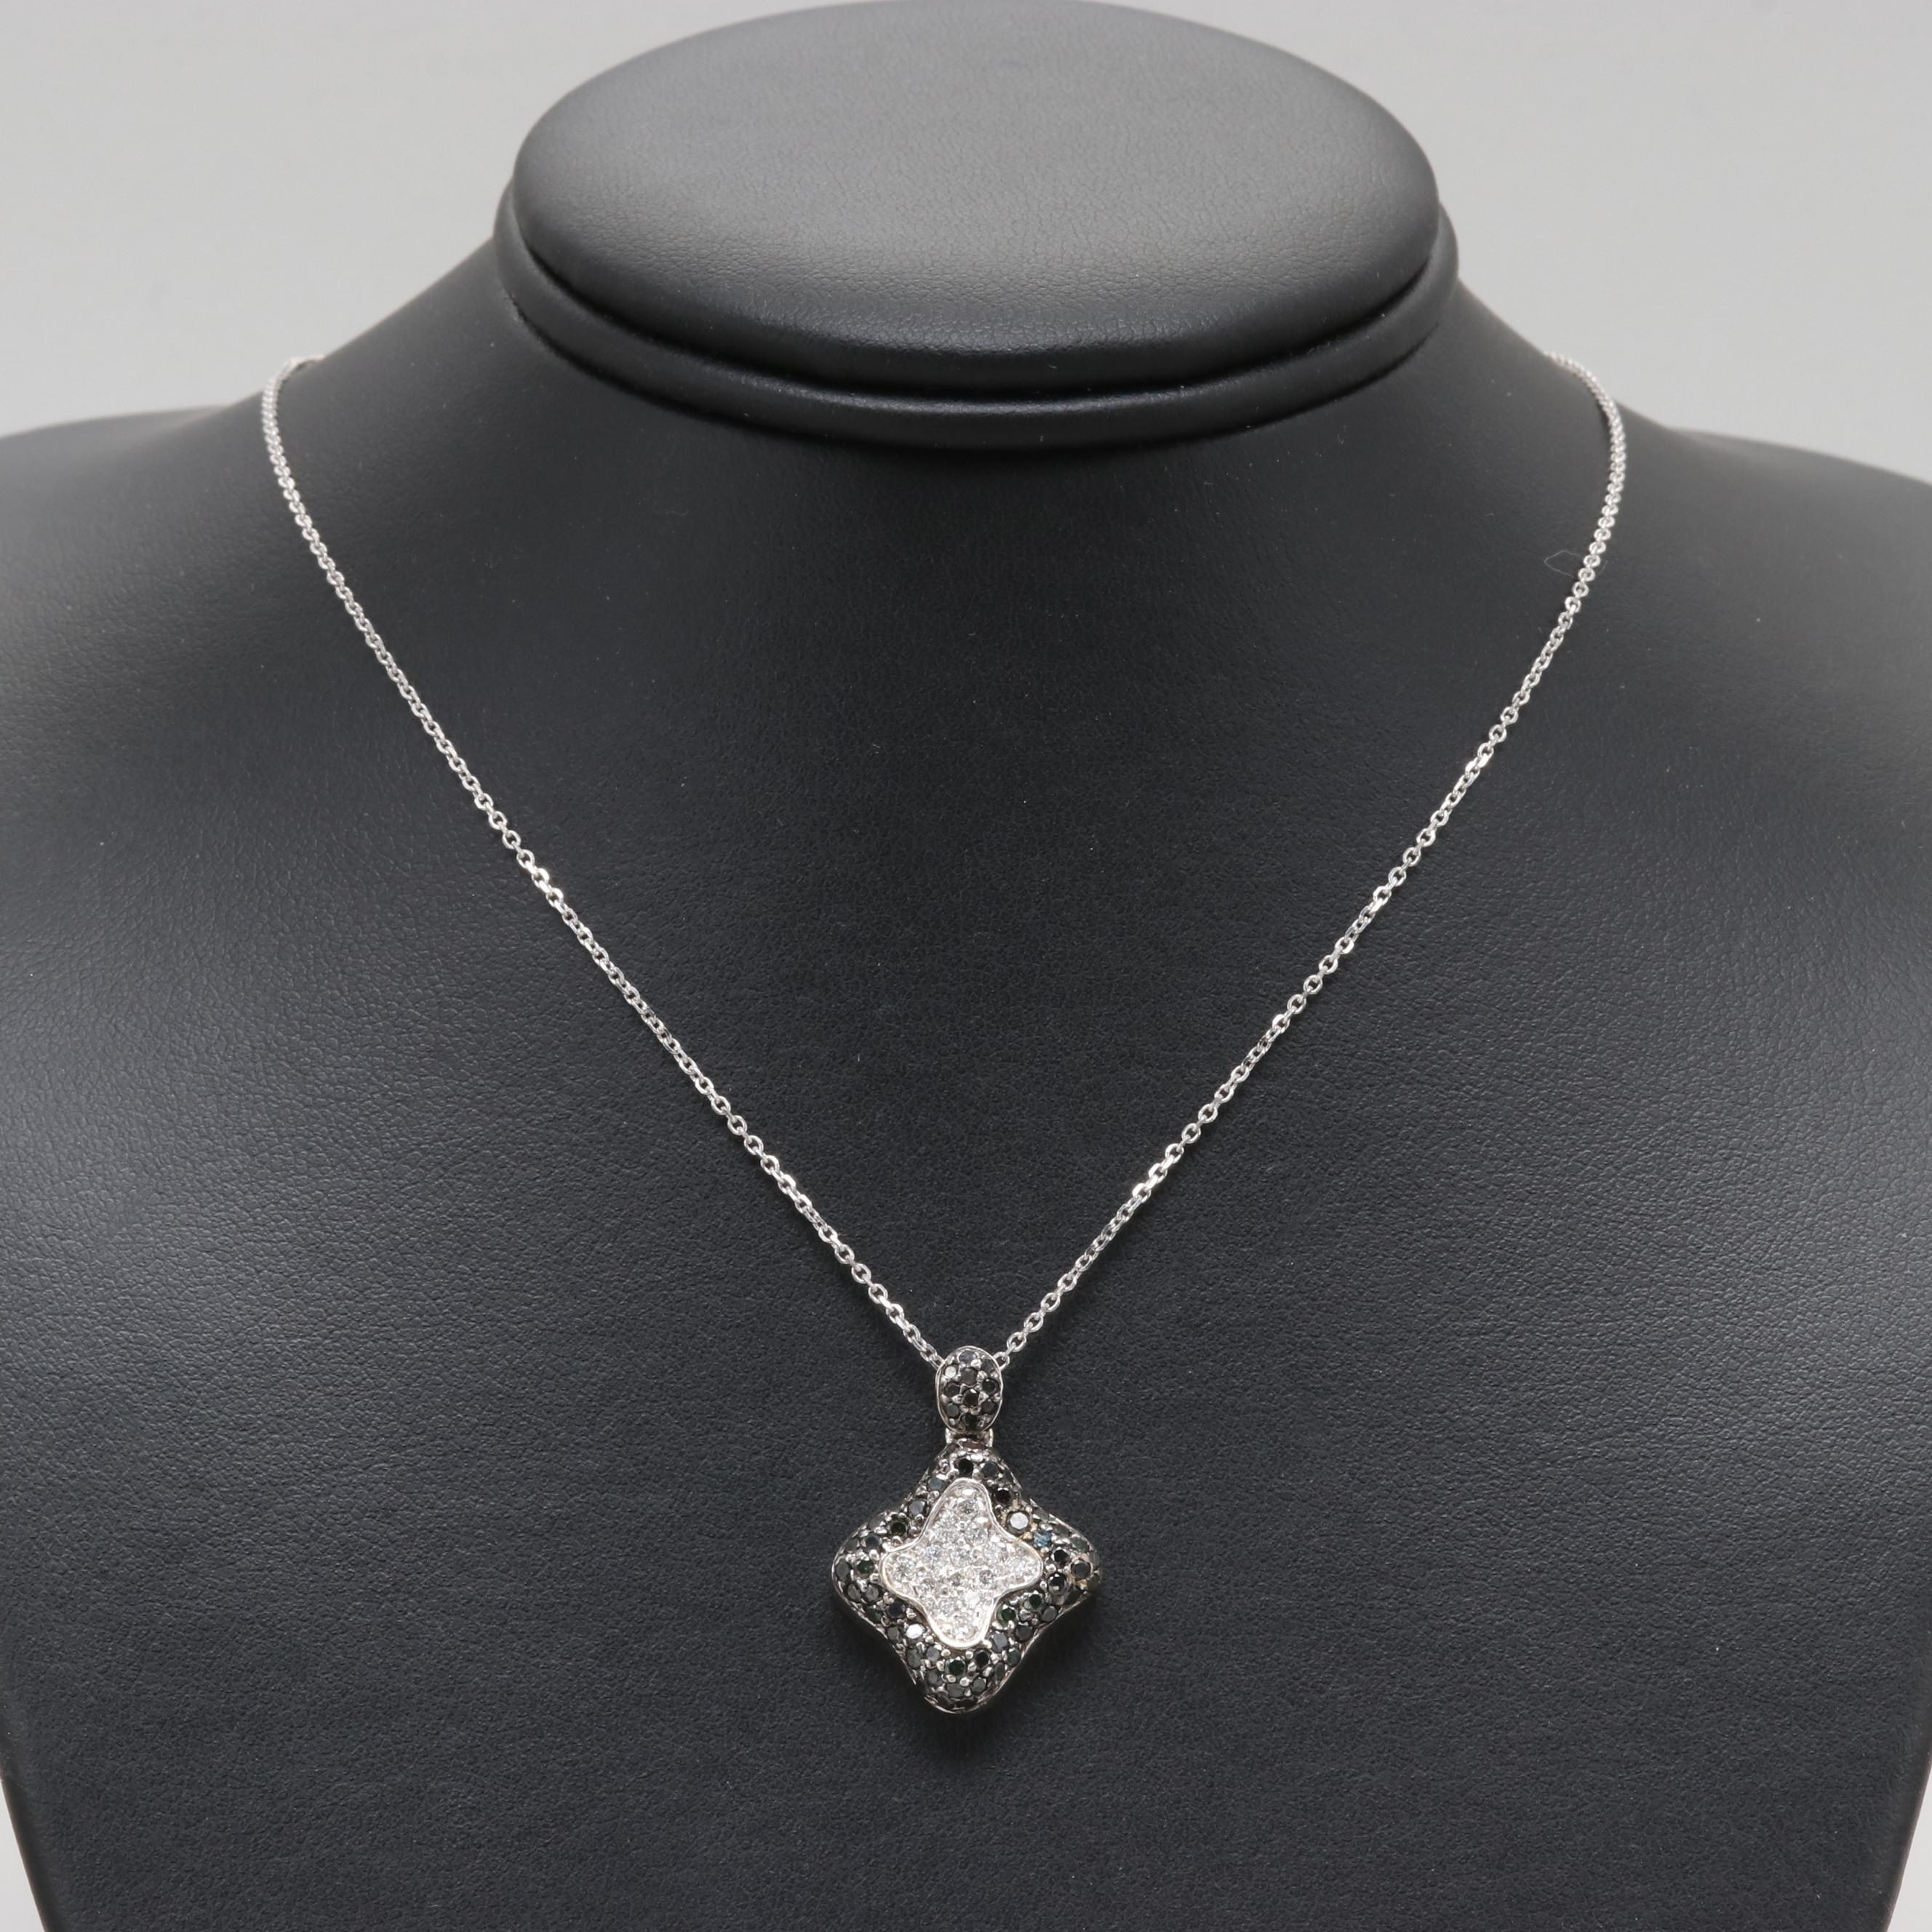 14K and 18K White Gold Diamond Pendant Necklace